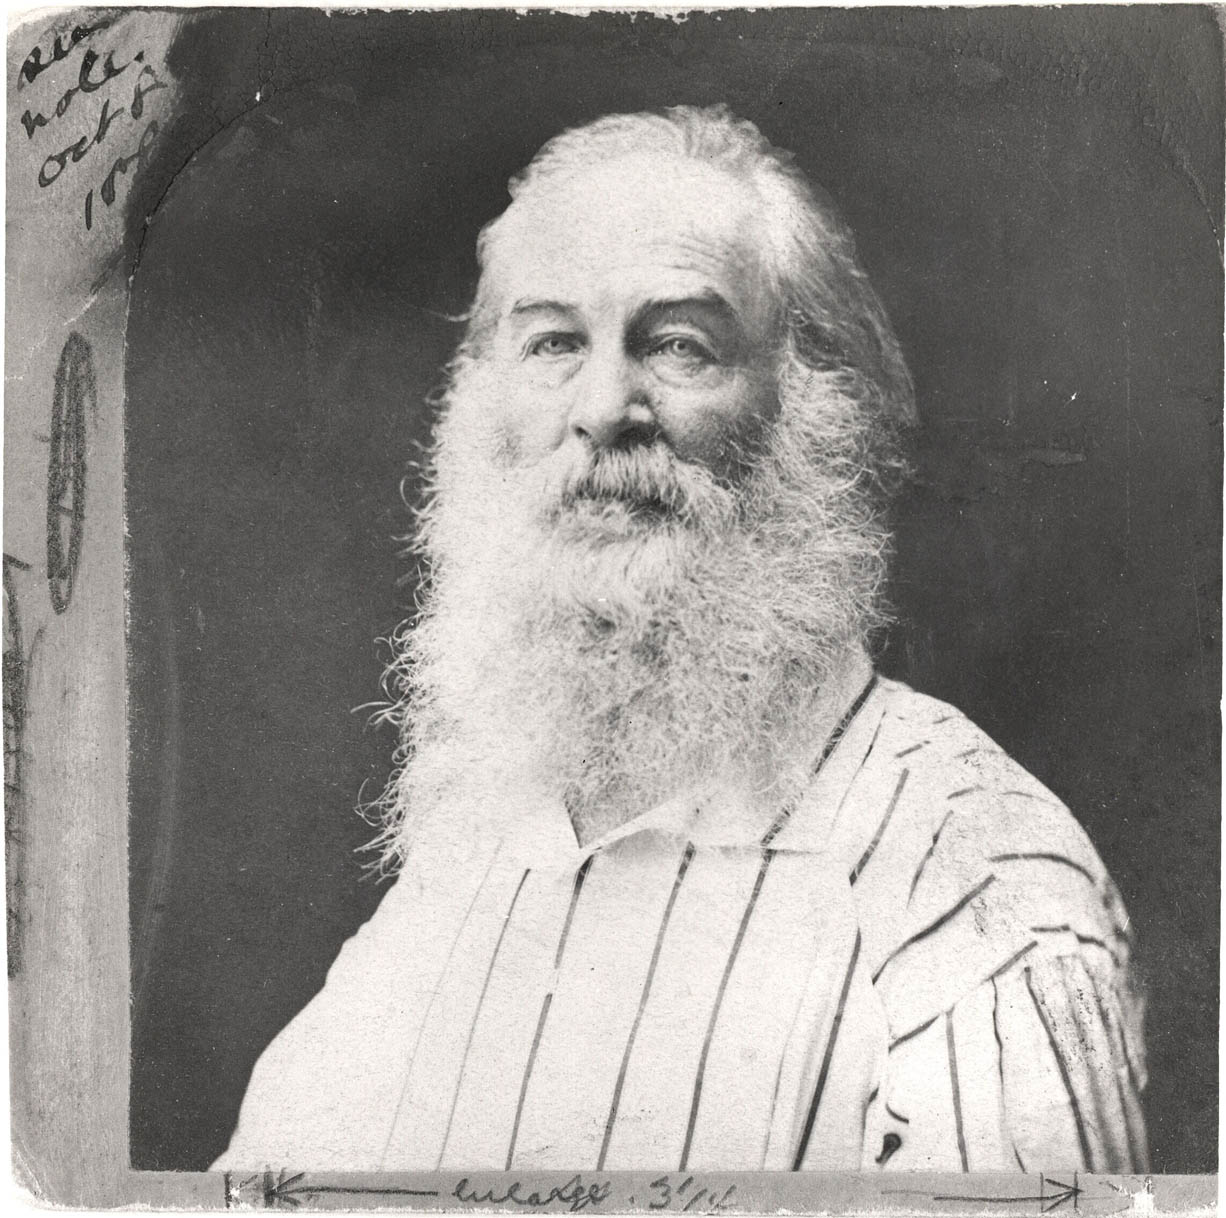 Whitman in a striped shirt. (Photo F. Pearsall, mid-1870s.)